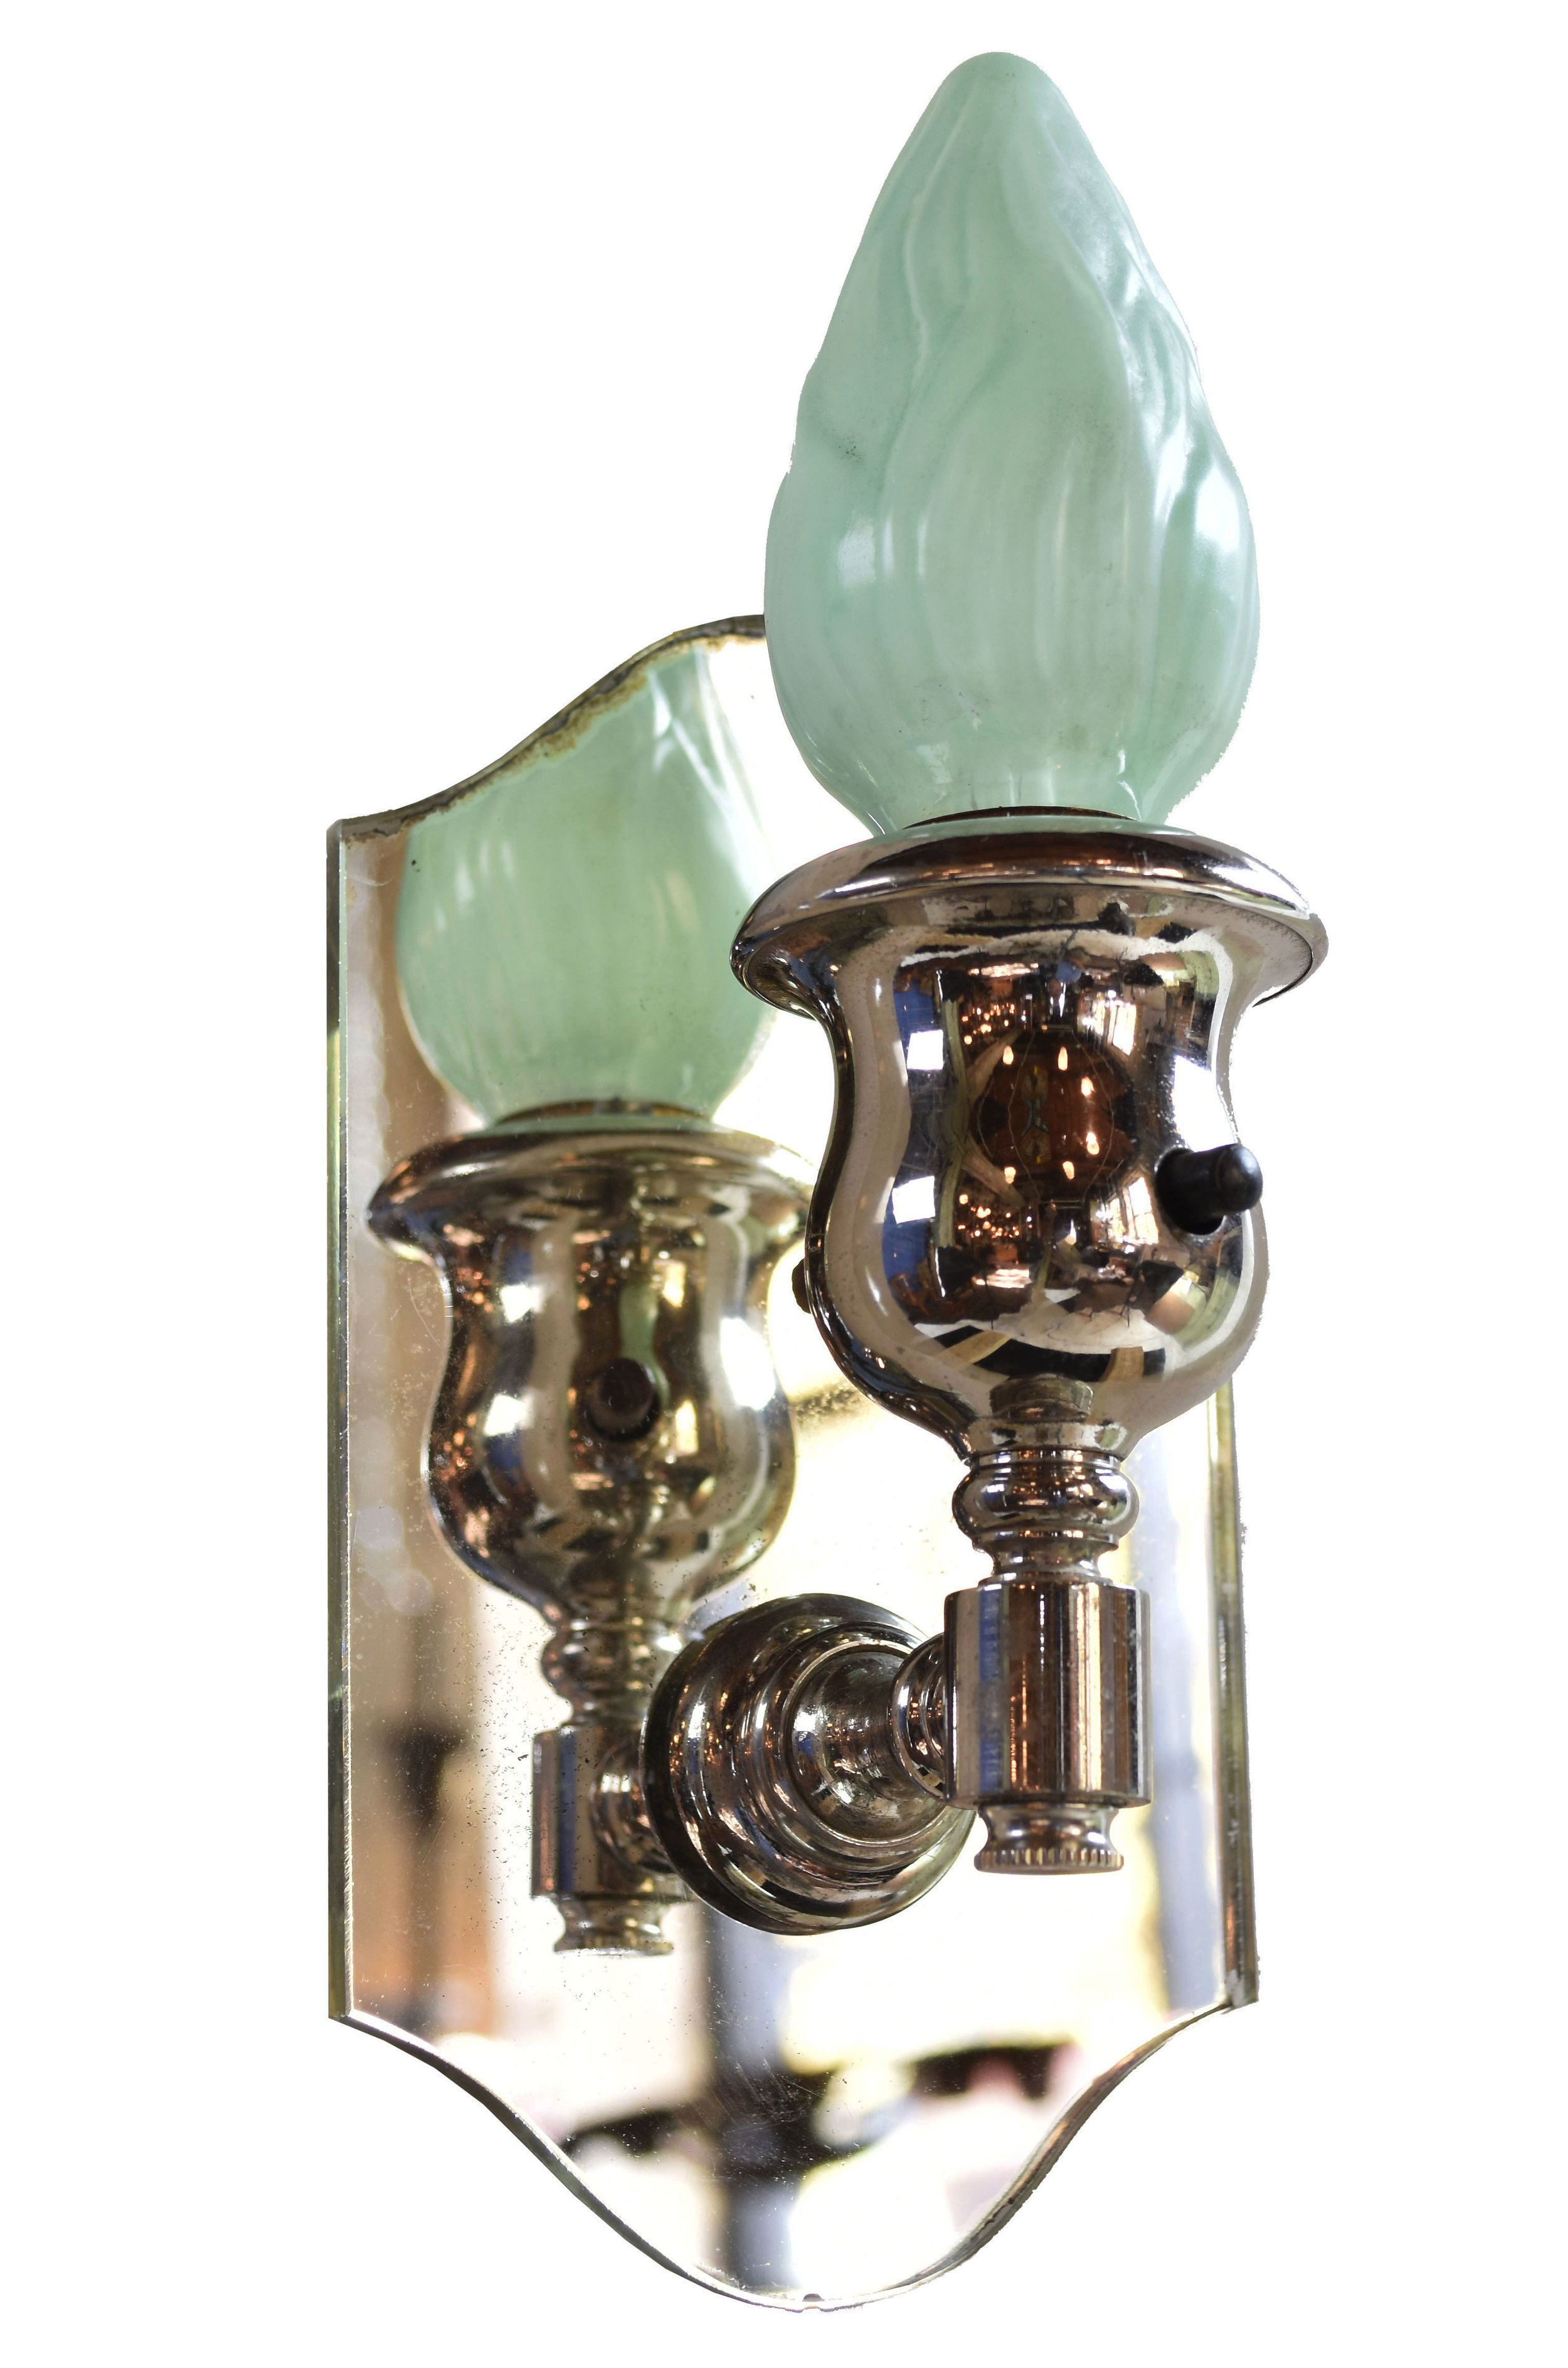 48077 chrome mirror sconce left side view.jpg